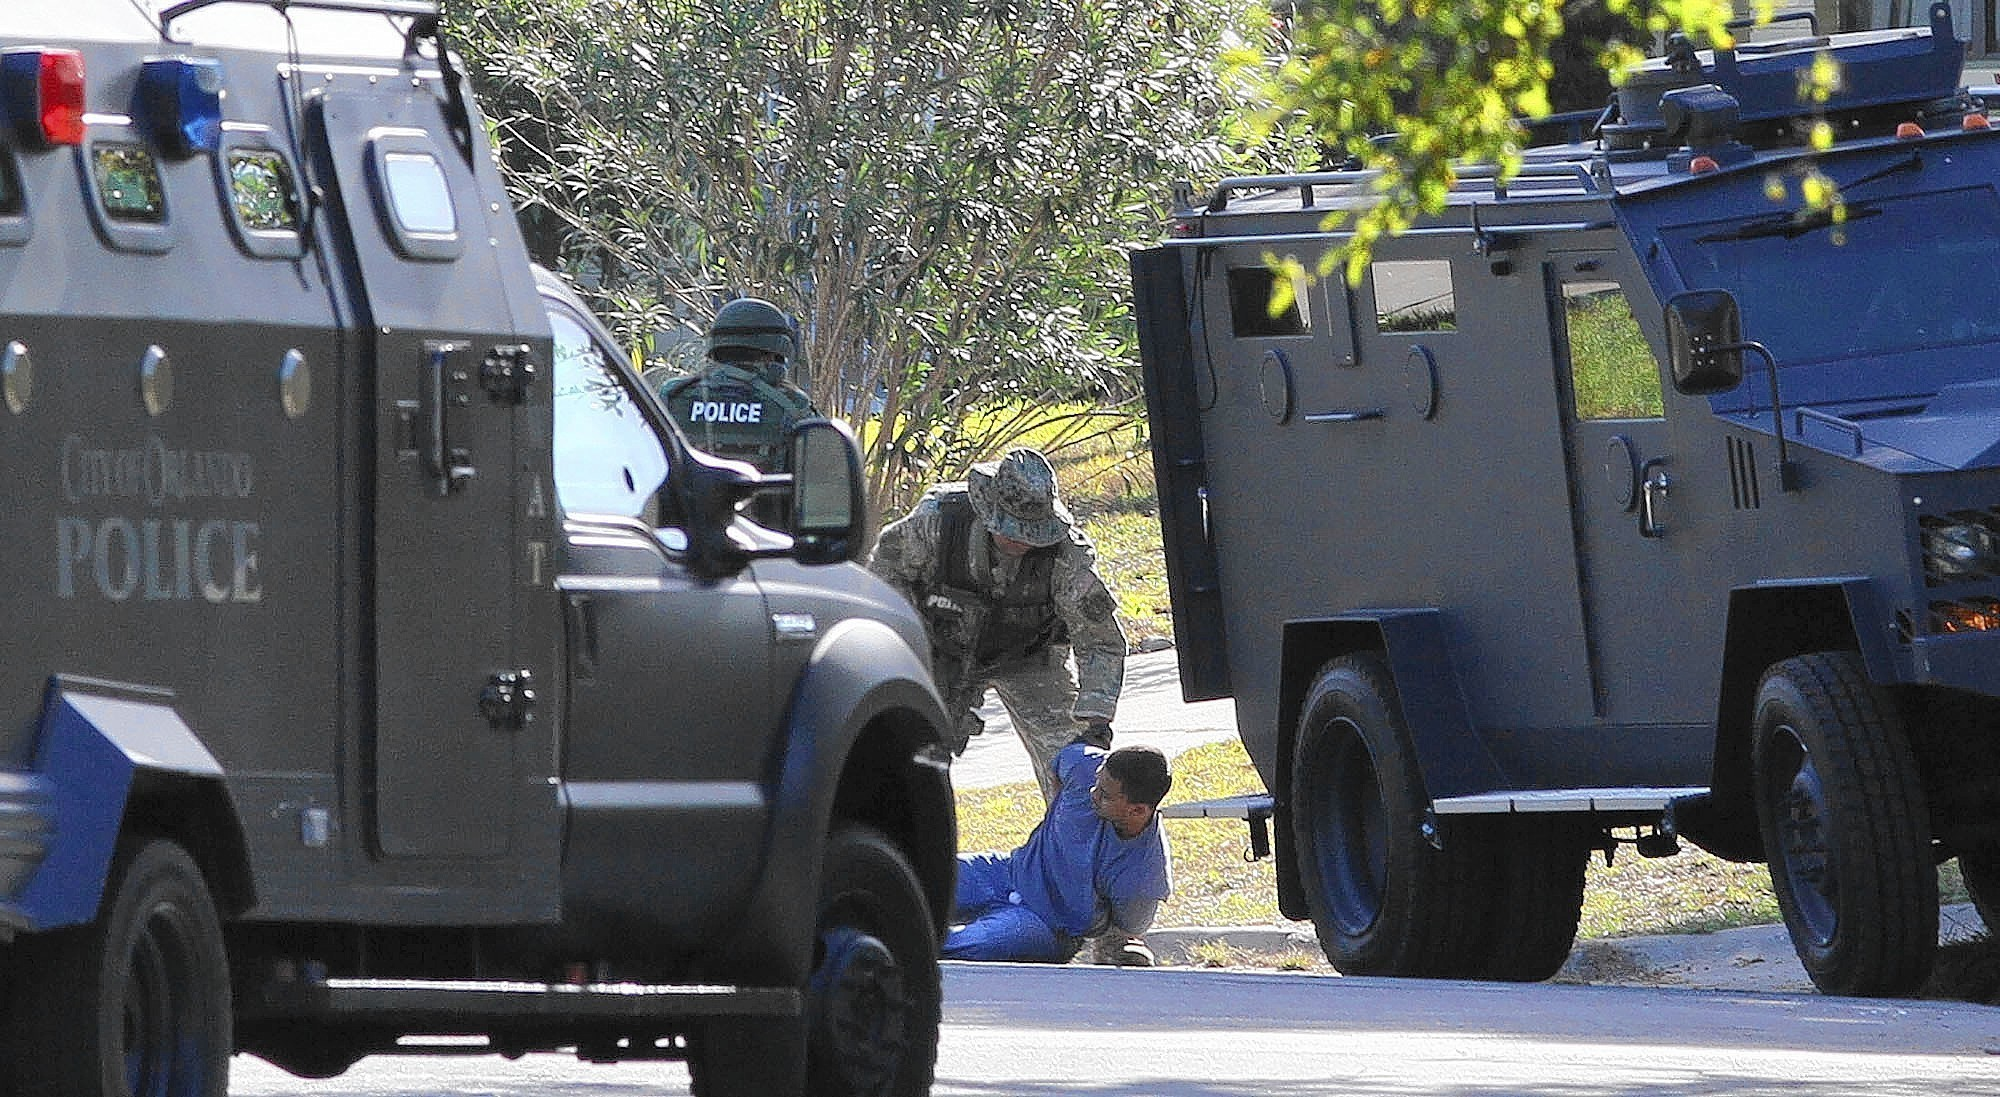 Orlando Police Plan To Buy New 230 000 Armored Personnel Carrier Orlando Sentinel